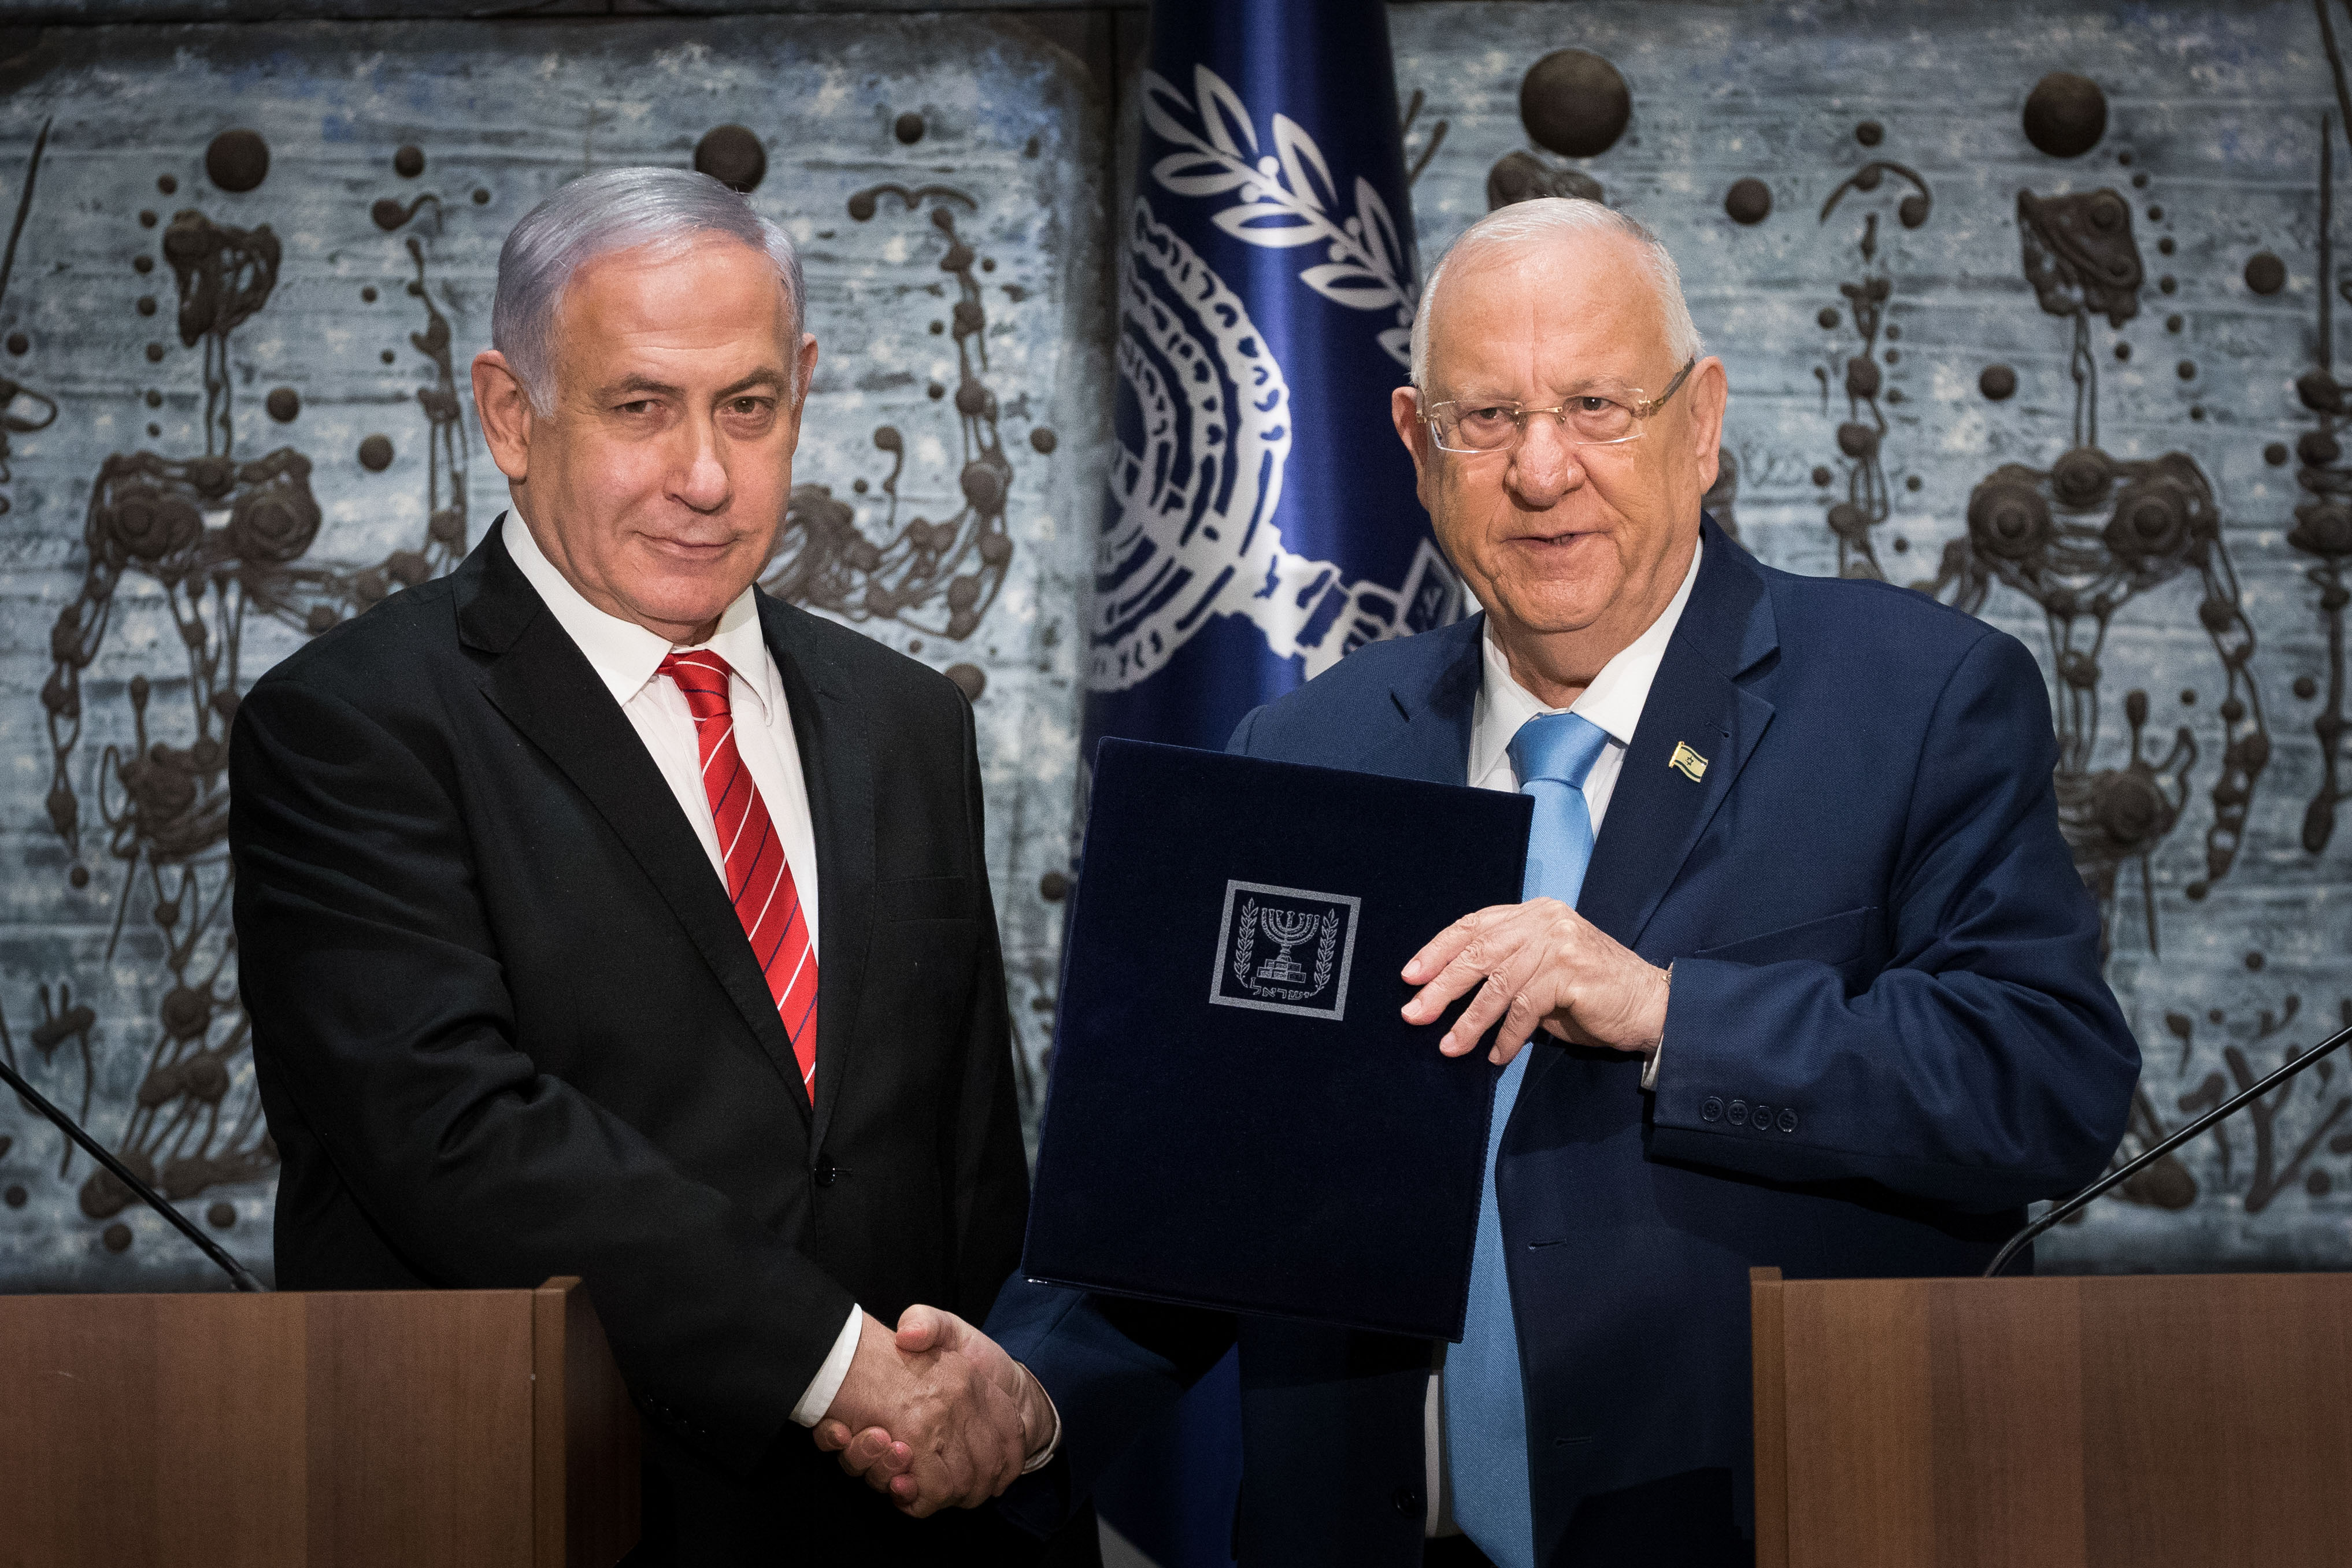 Israeli PM Netanyahu asked by president to form new government